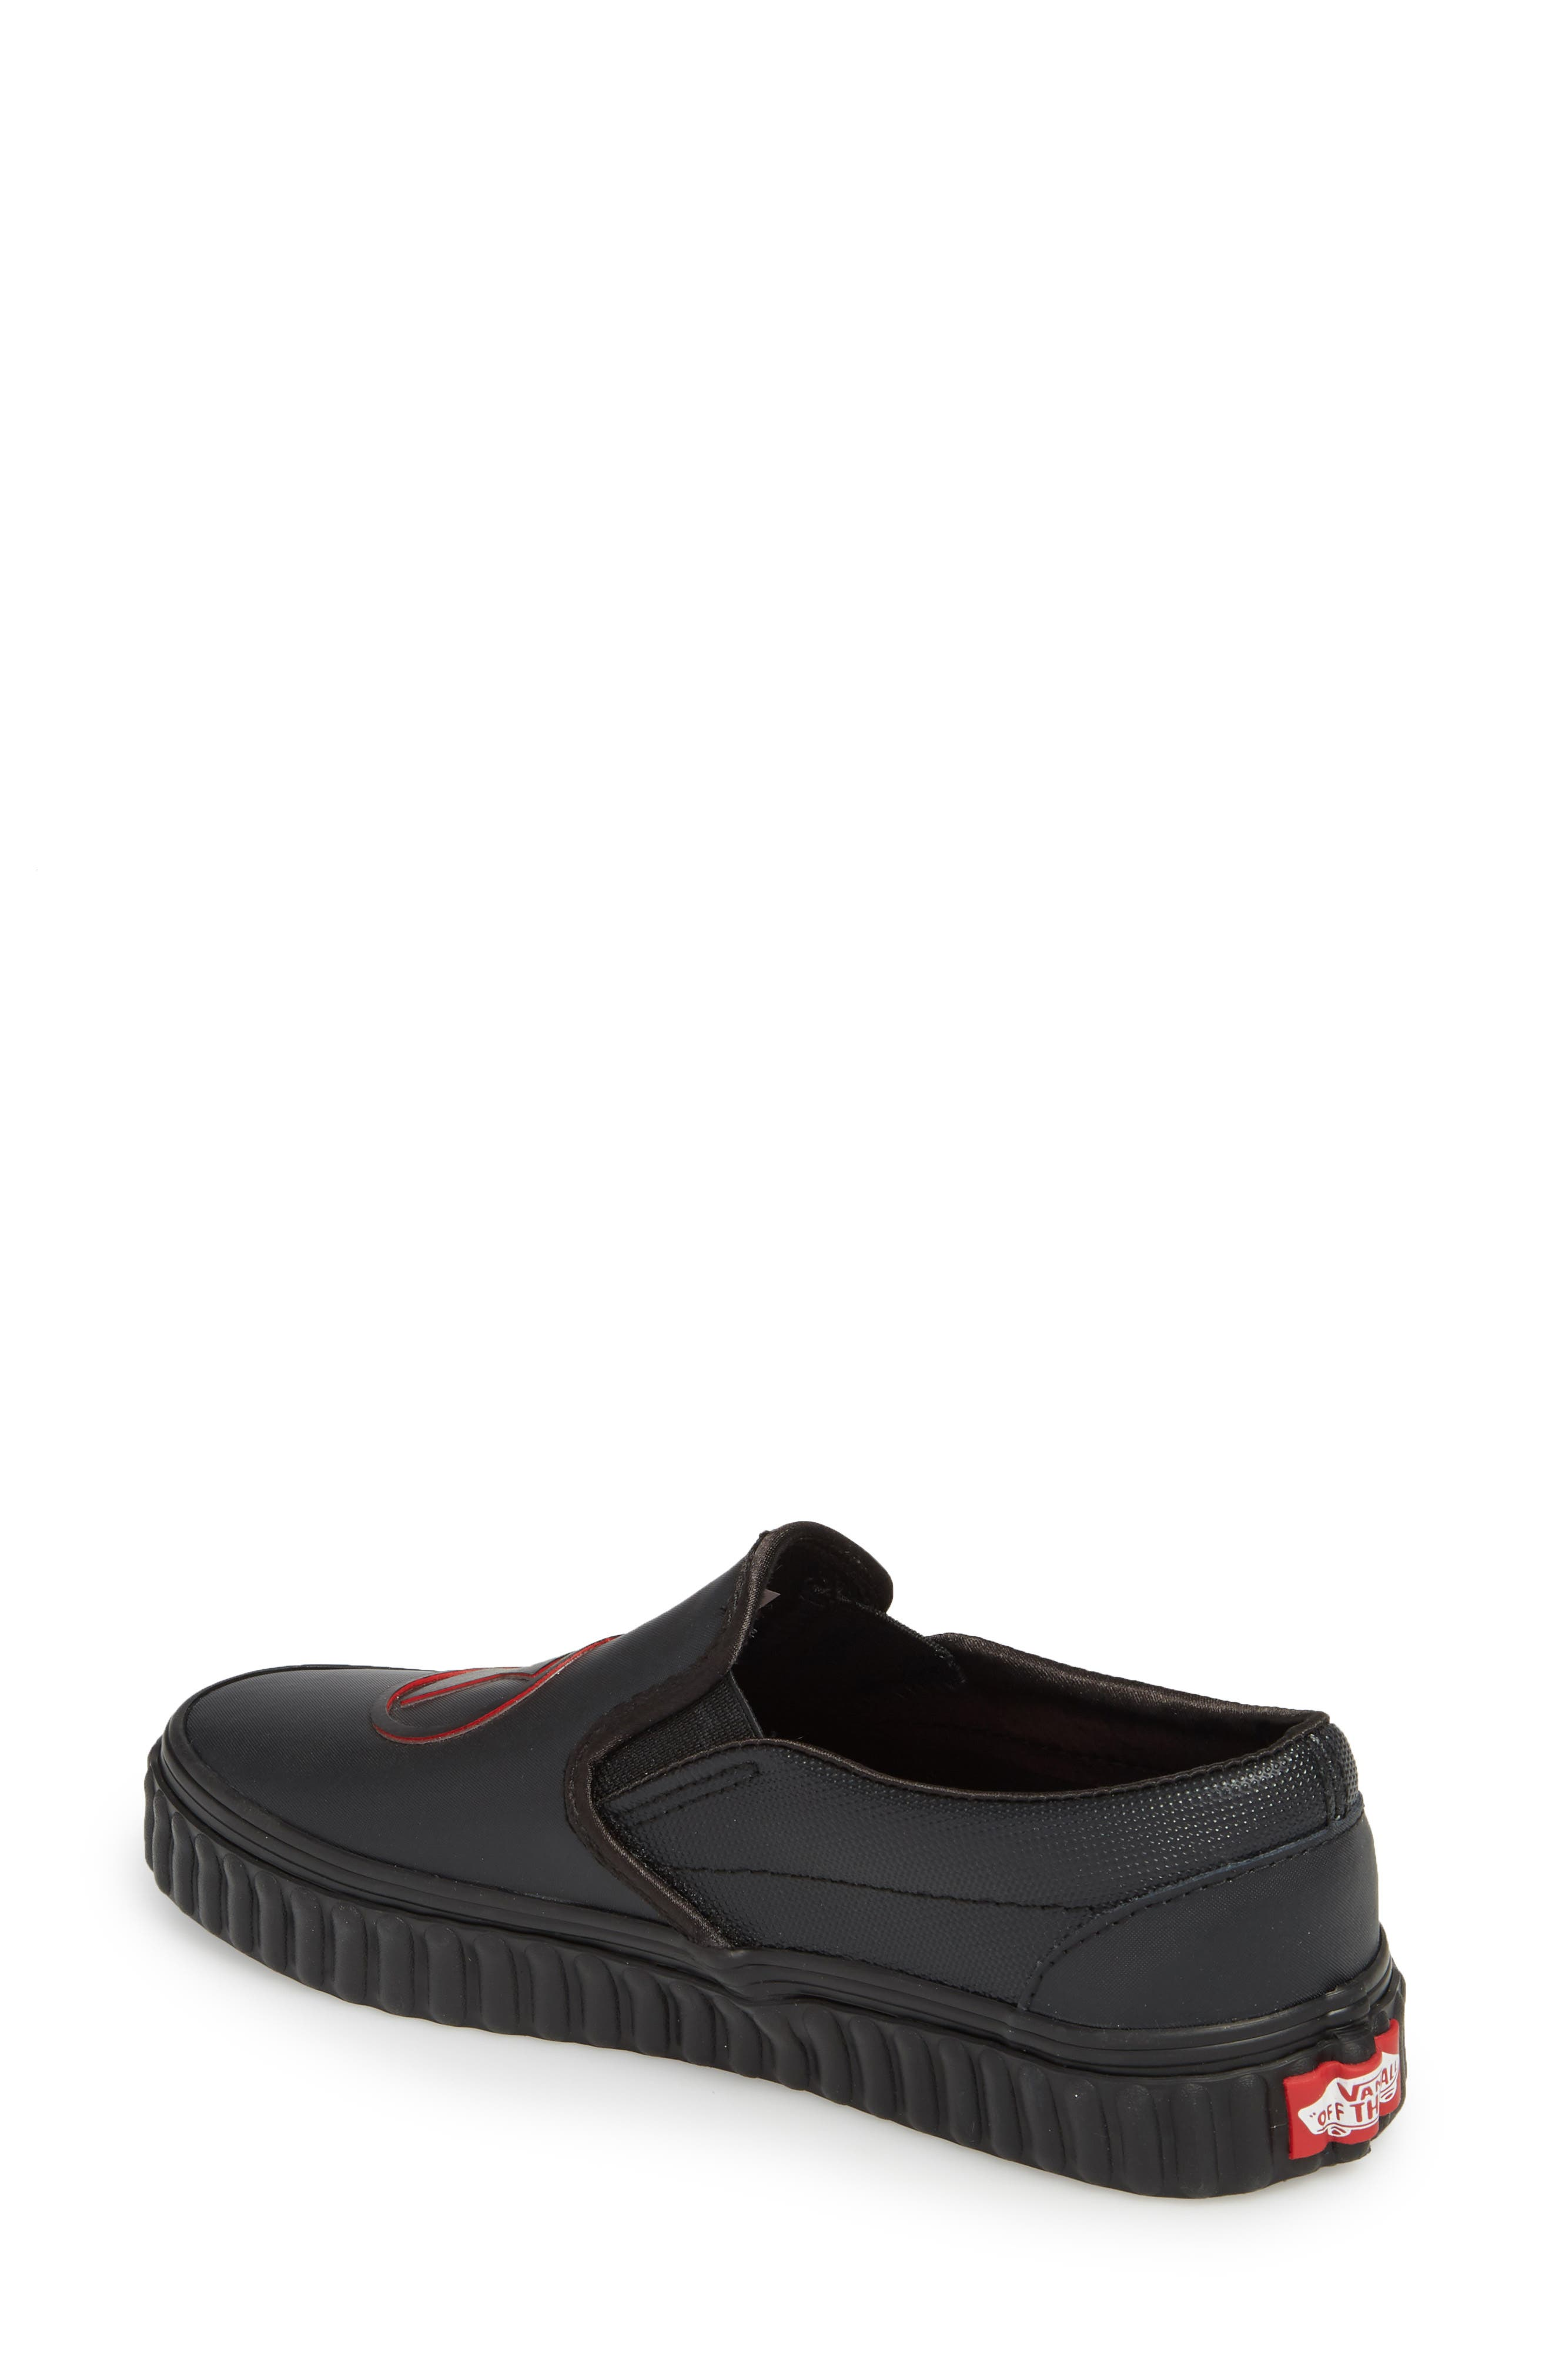 Marvel<sup>®</sup> Black Widow Classic Slip-On,                             Alternate thumbnail 2, color,                             001